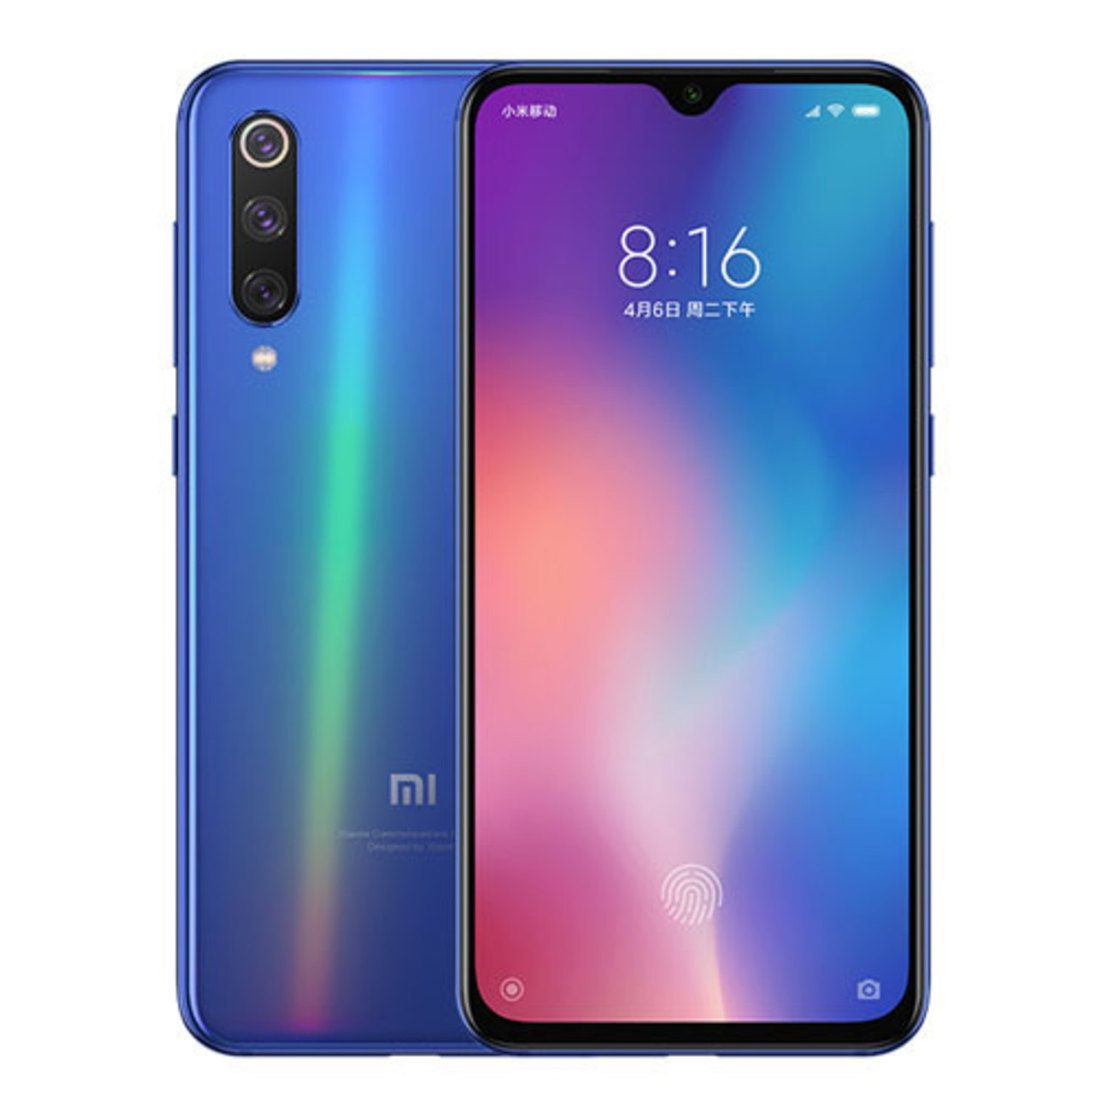 Smartphone Xiaomi Mi 9 6GB Ram Tela 6.39 64GB Camera Tripla 48+16+12MP - Azul